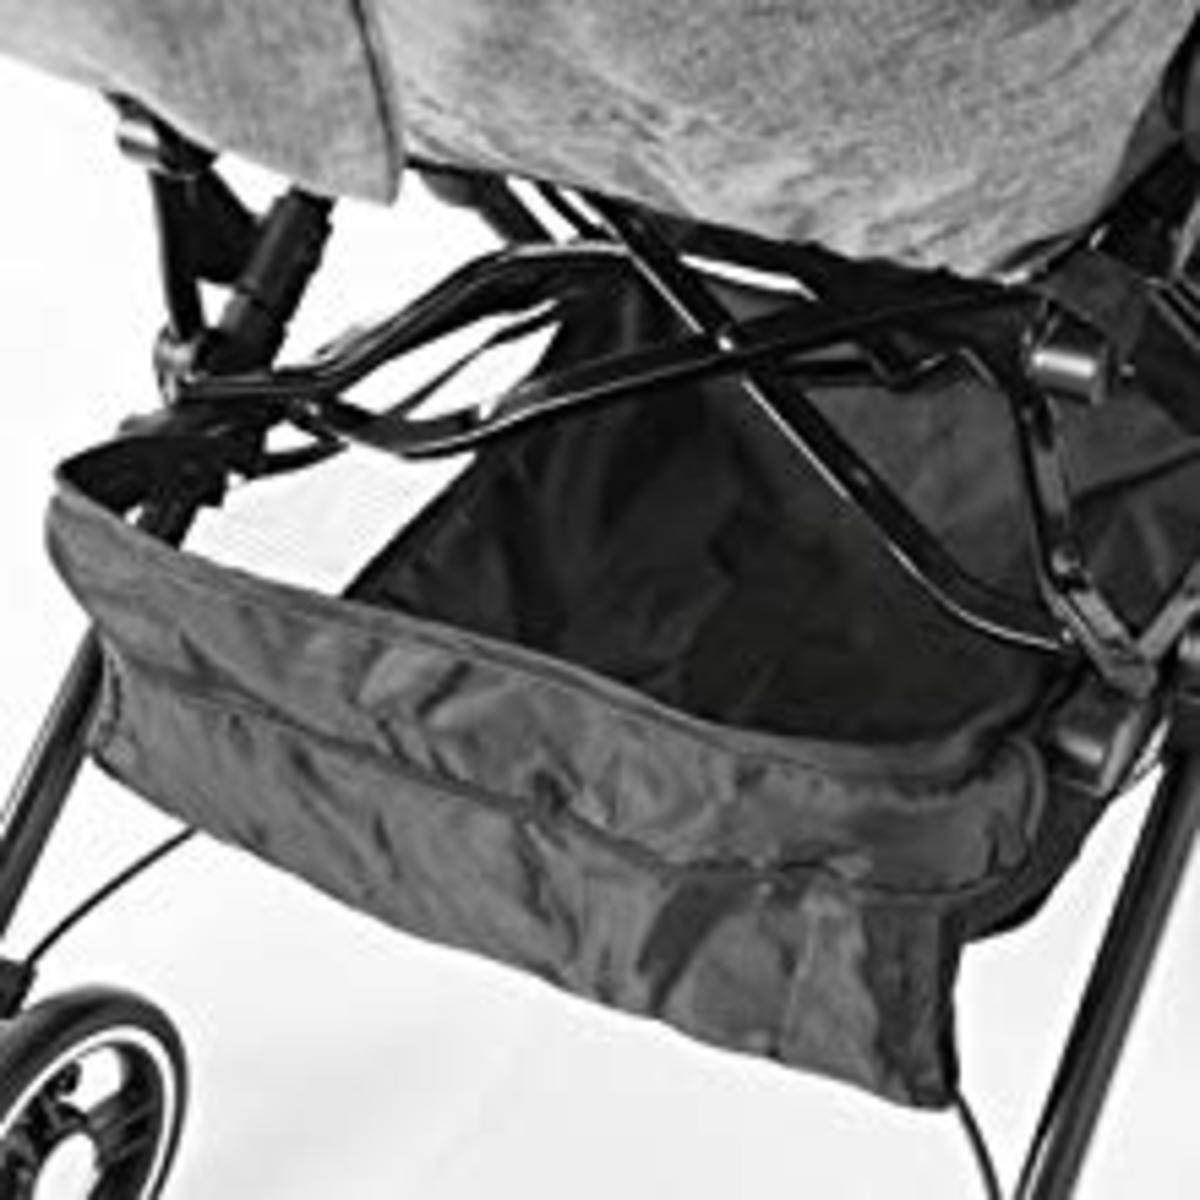 The basket at the bottom of this mini stroller is extremely good for additional storage. I use it for baby diapers and the occasional grocery bag.